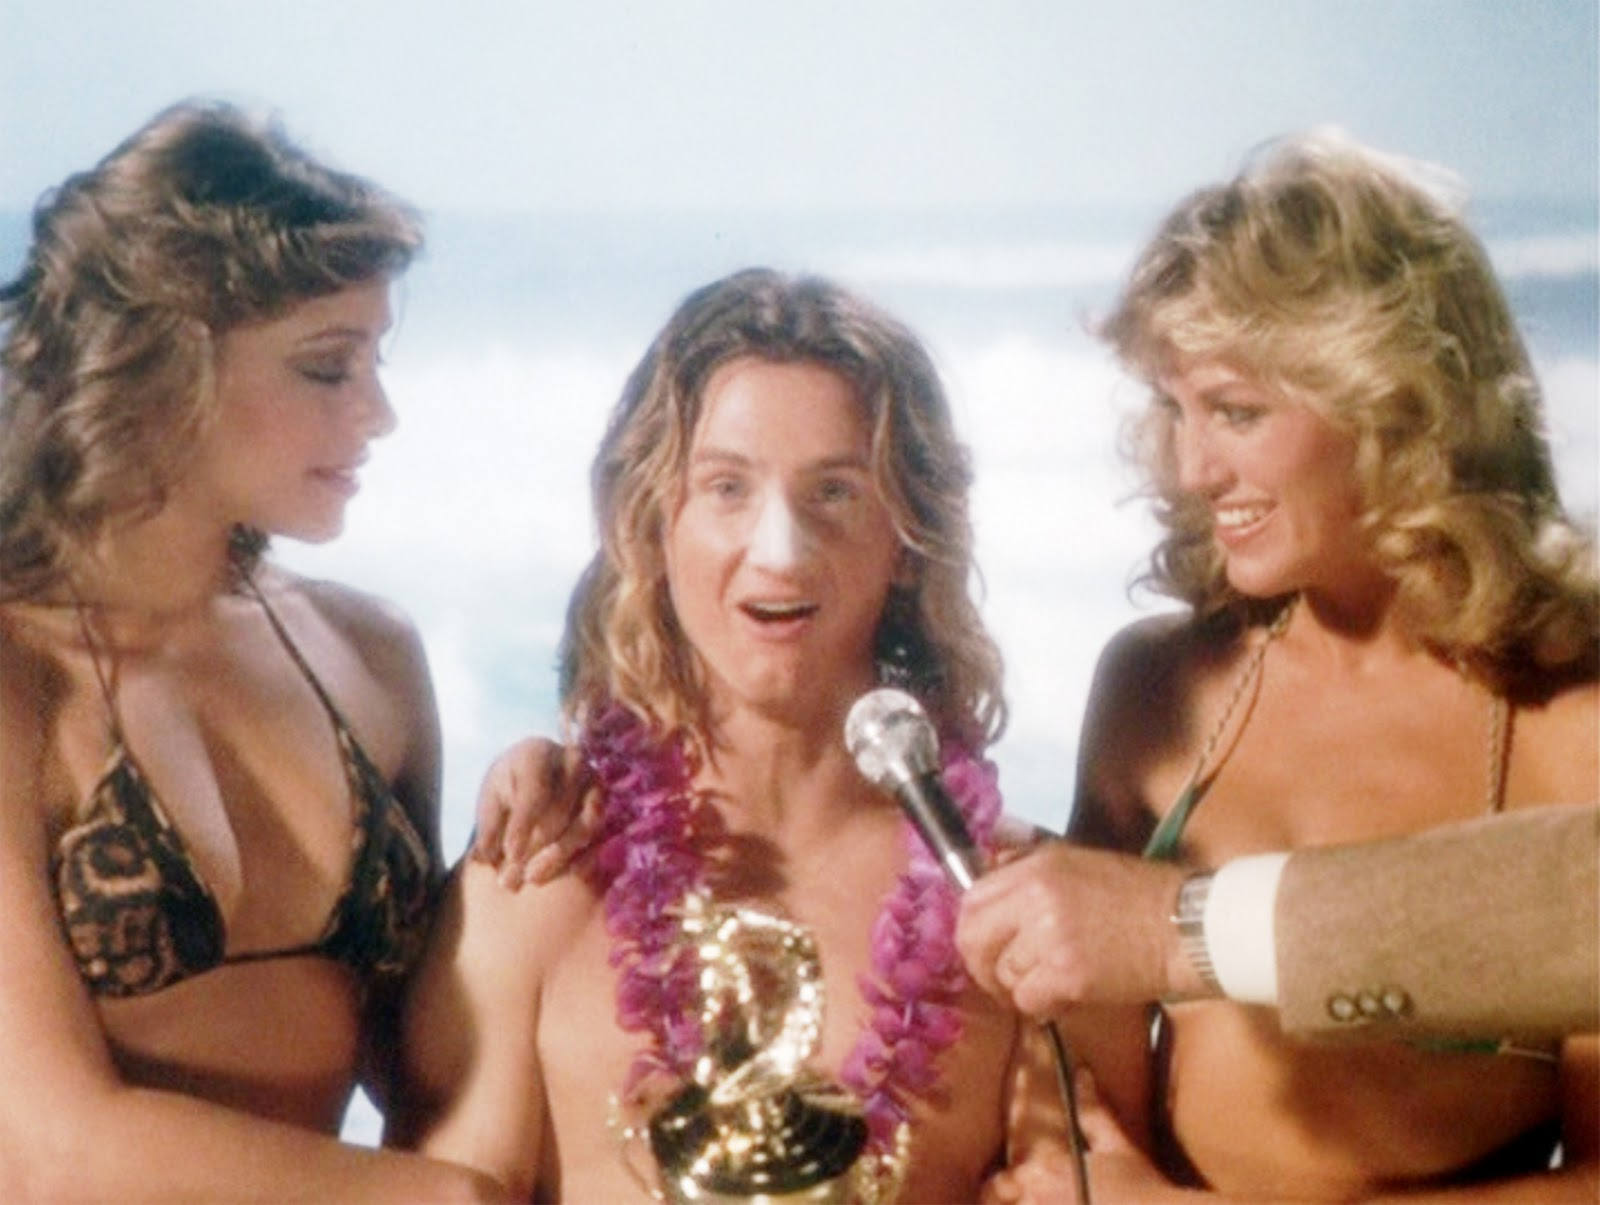 fast-times-at-ridgemont-high-spicoli-surfer-dream.jpg